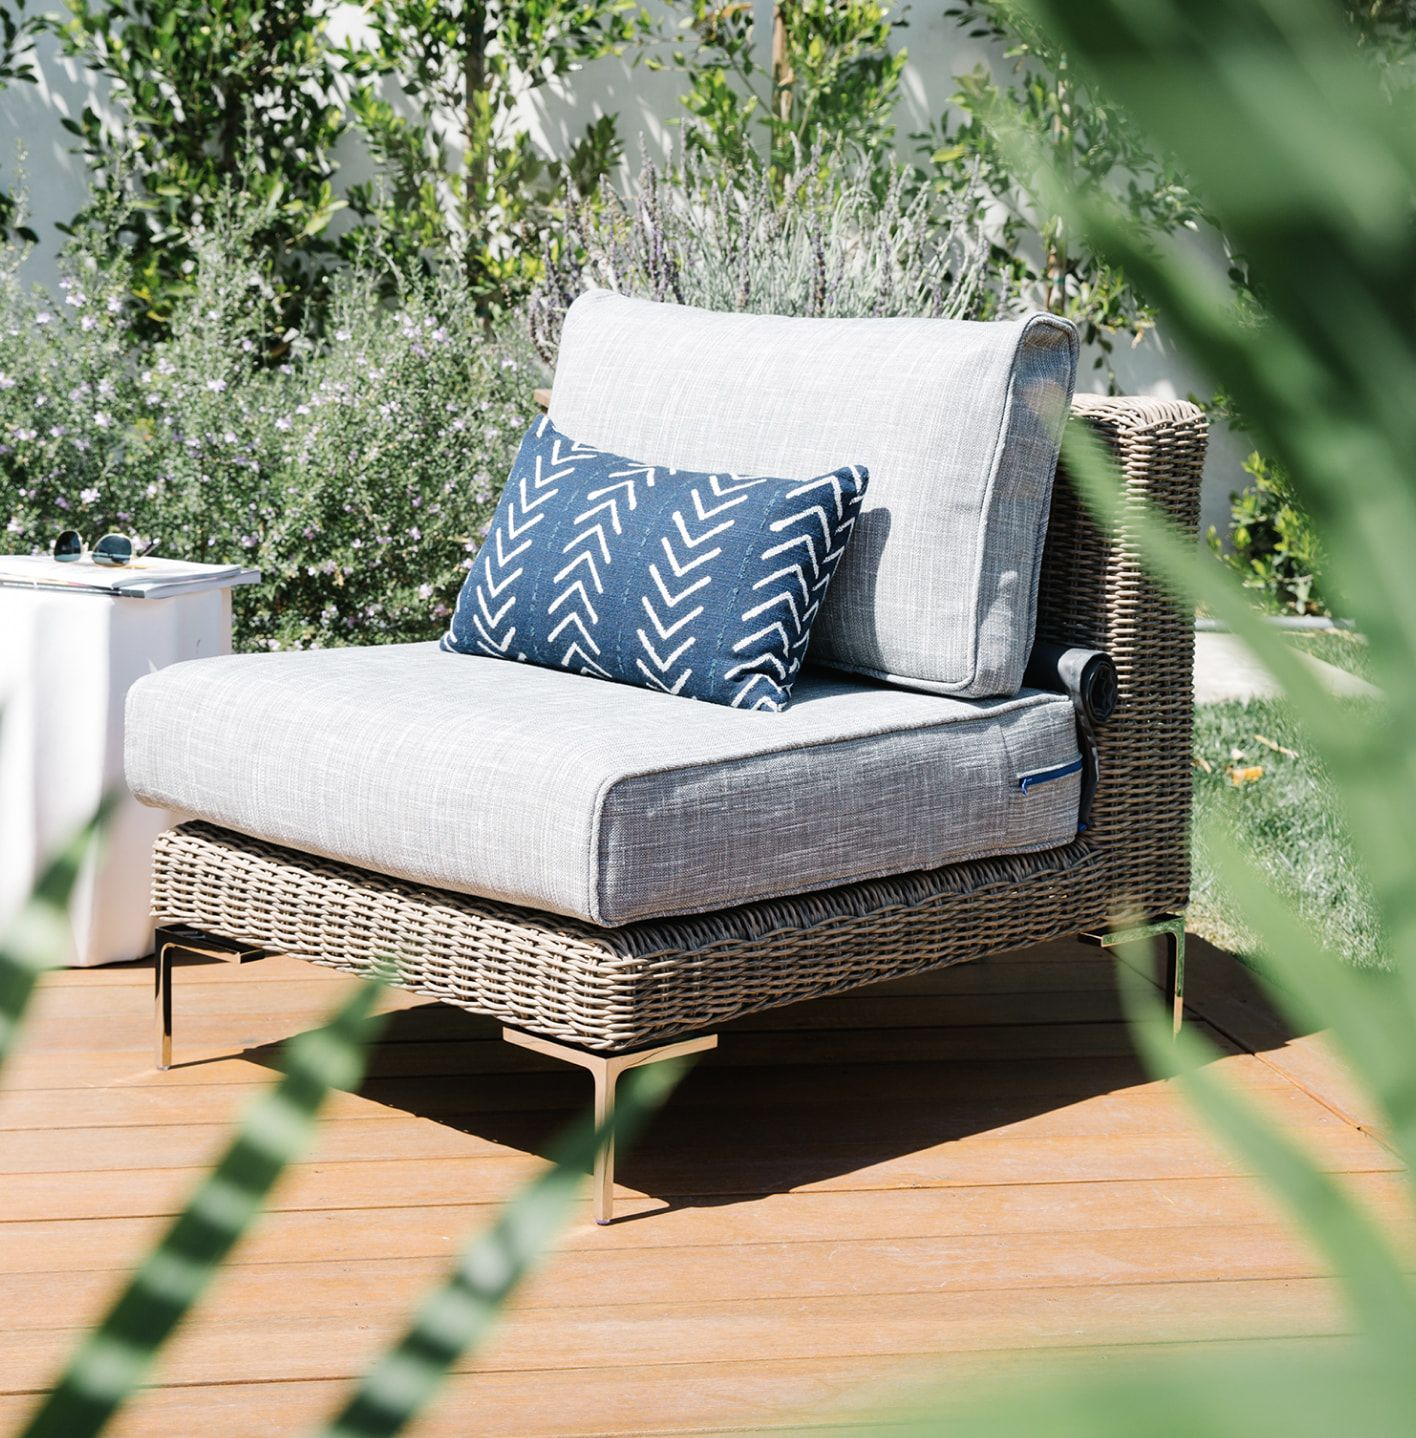 outer the perfect outdoor sofa is now